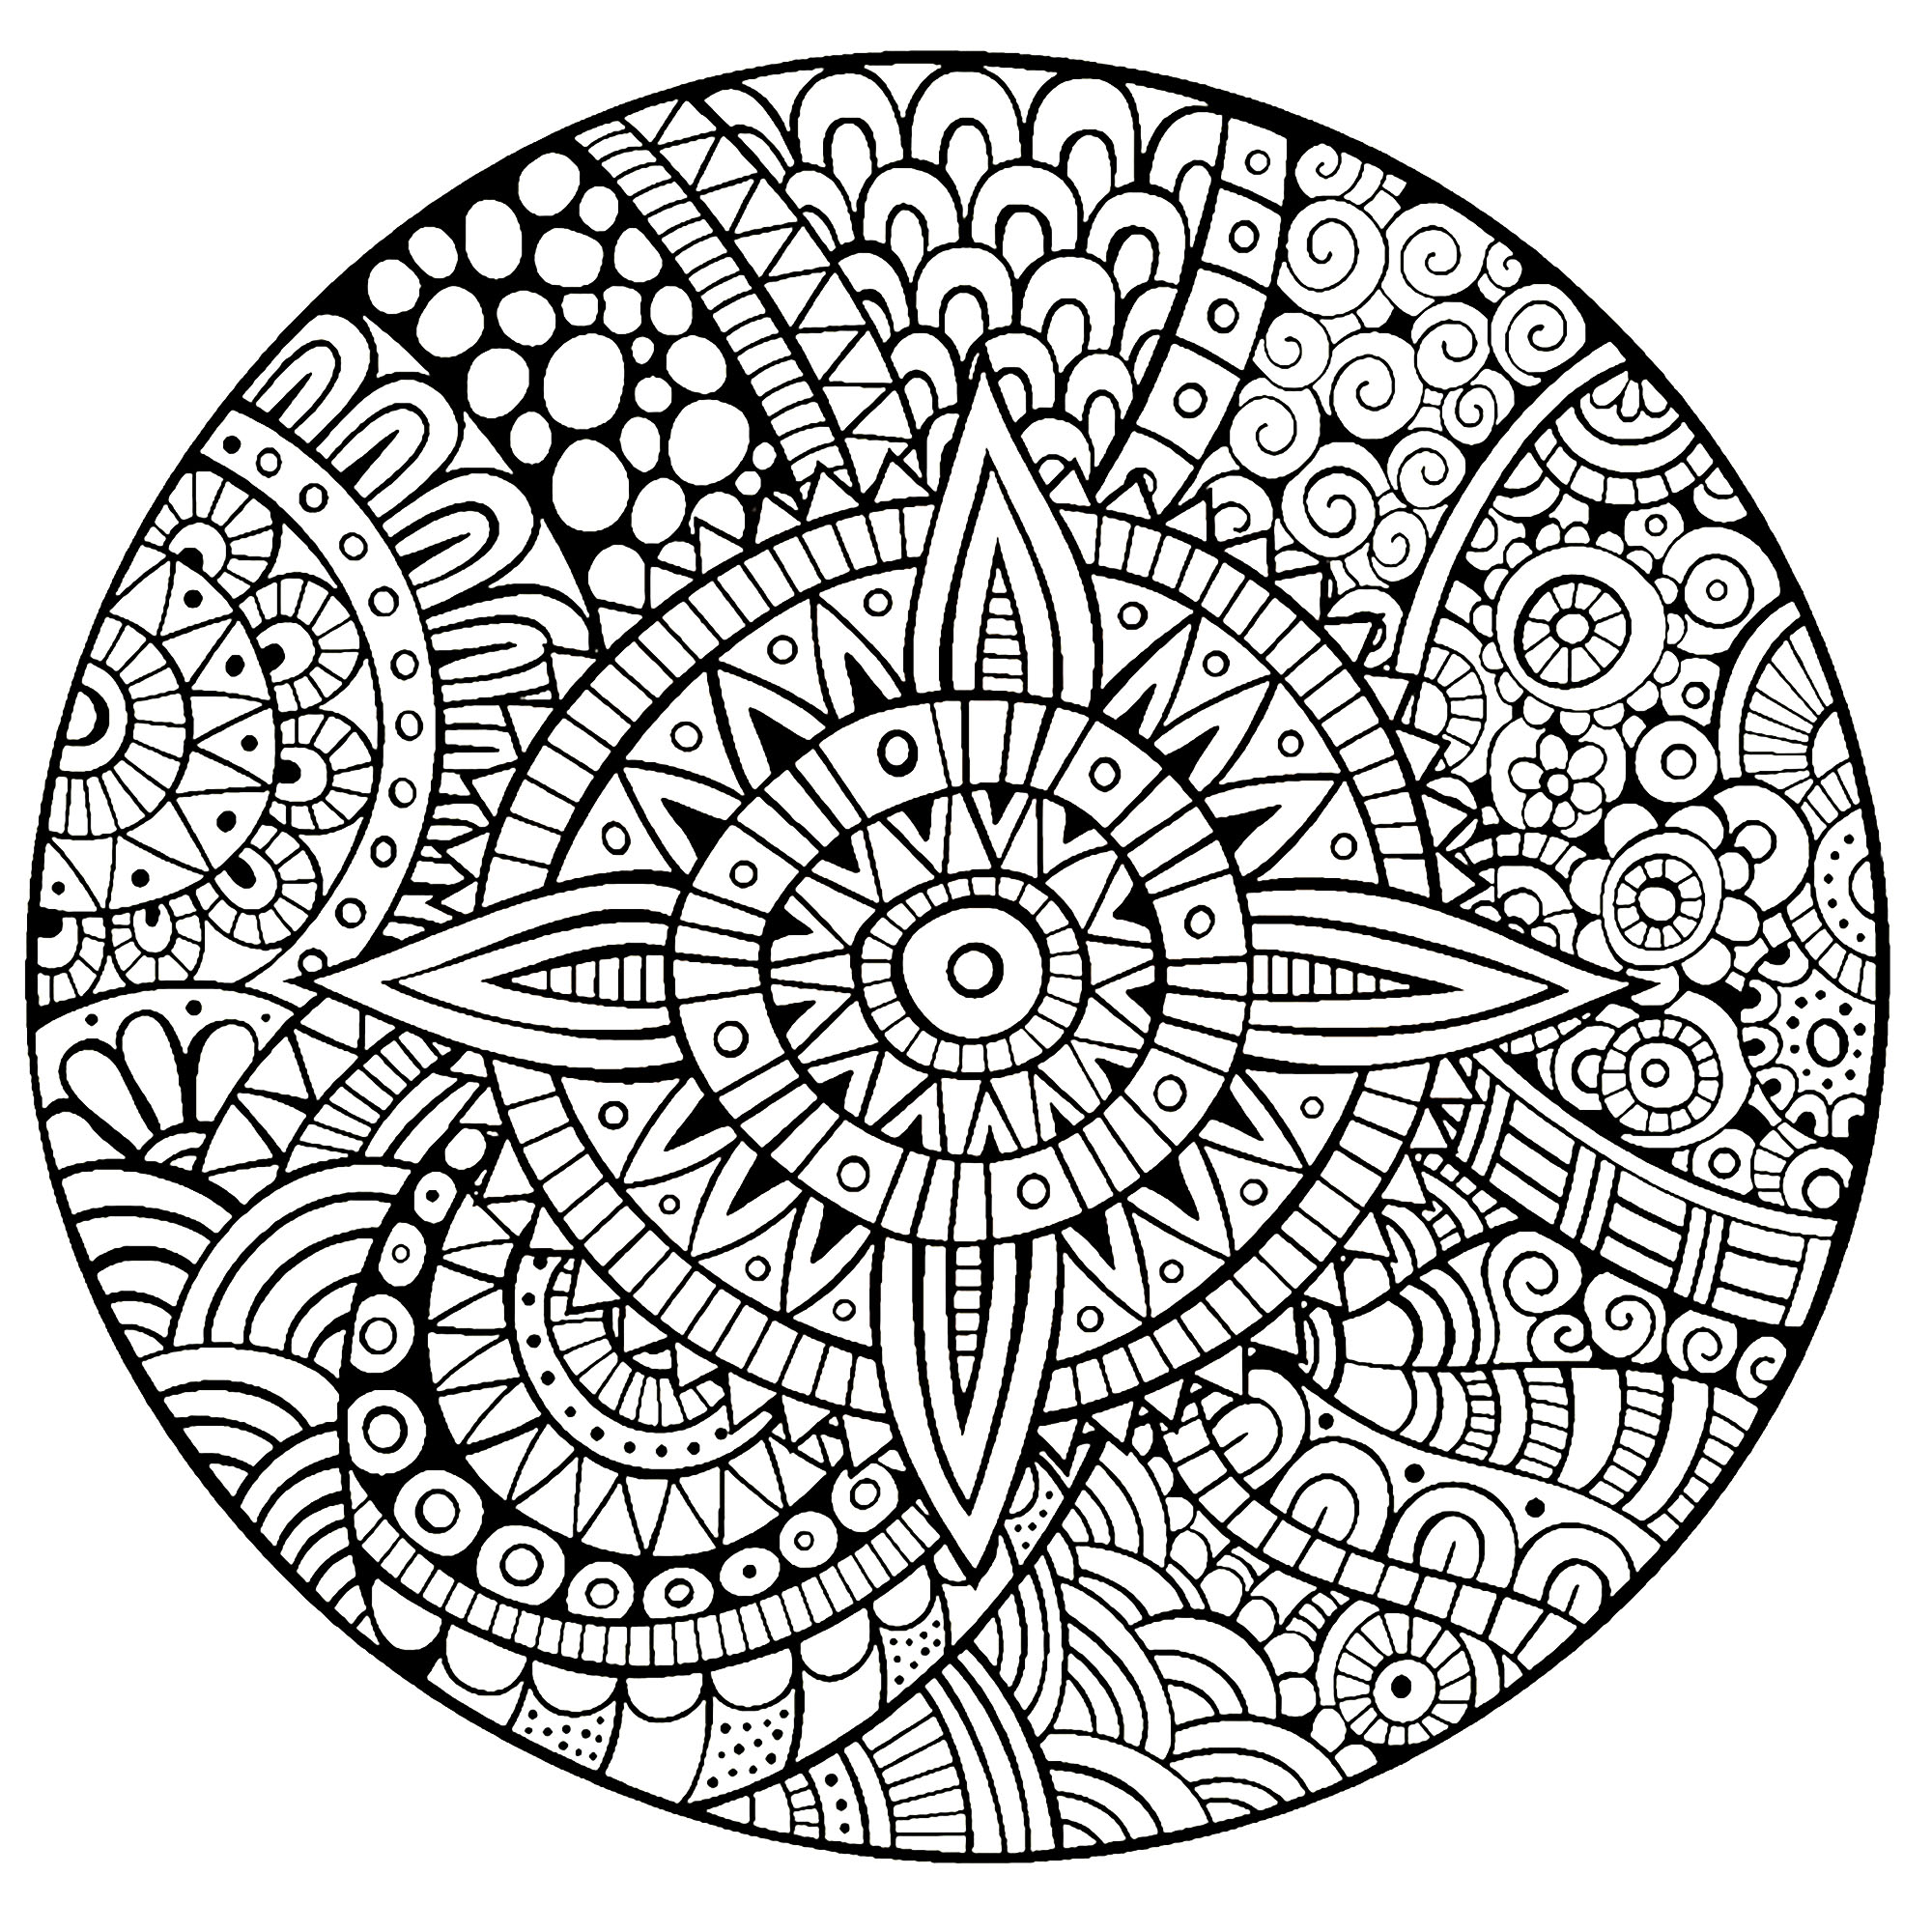 Magnificent and harmonious Zen & Anti-stress Mandala. Designing and coloring mandalas help with concentration.